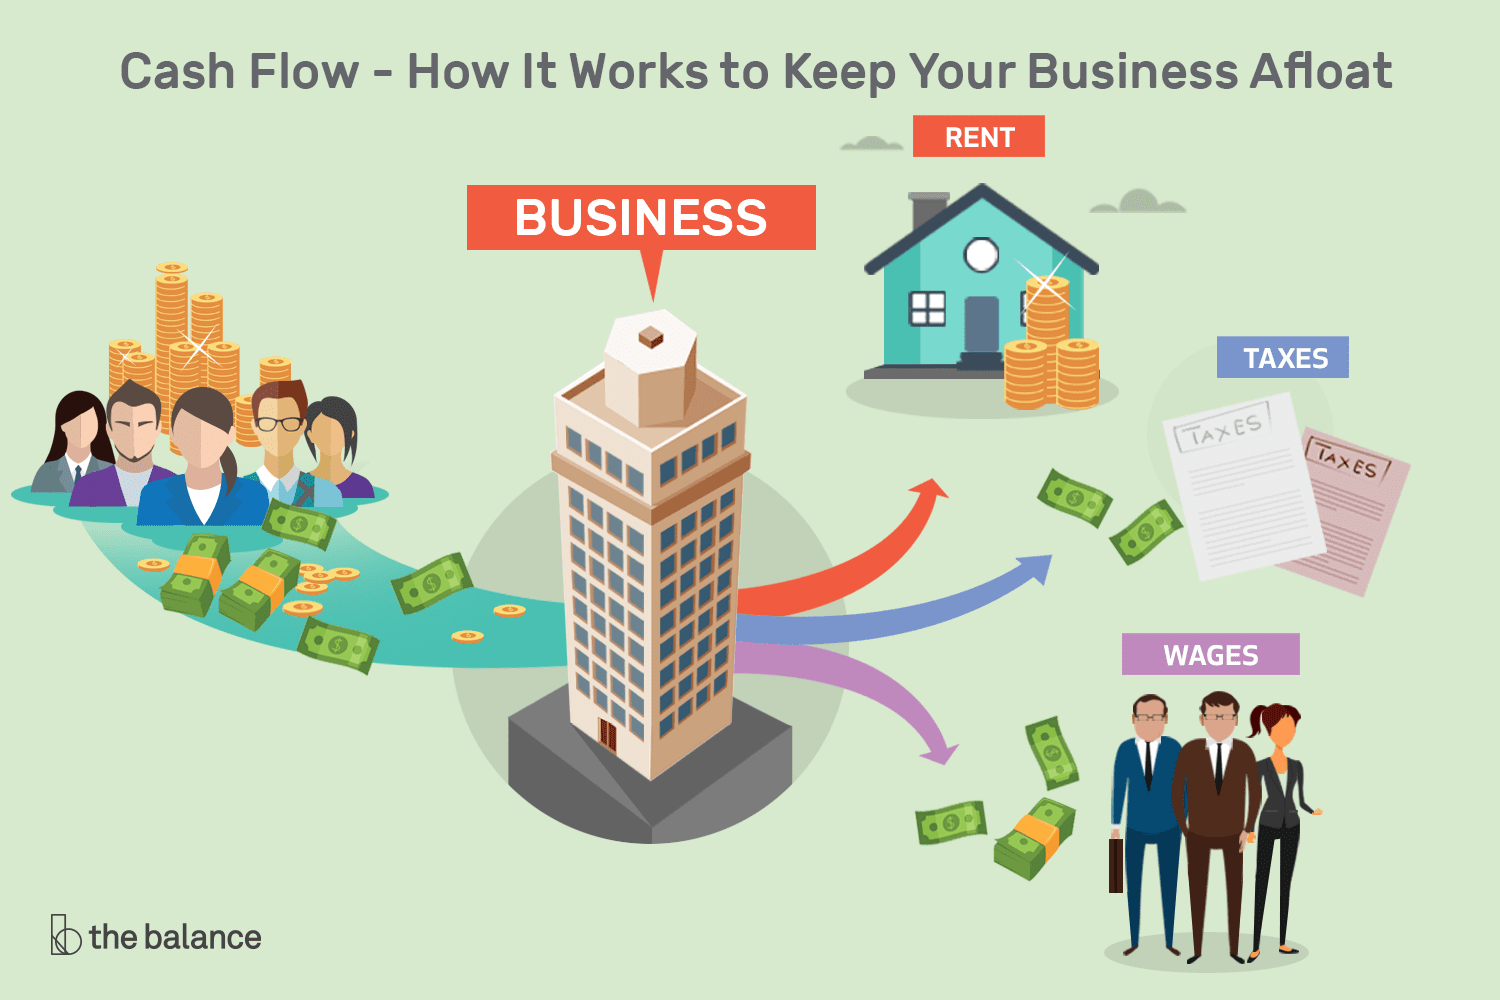 What Is Cash Flow And Why Is It Important